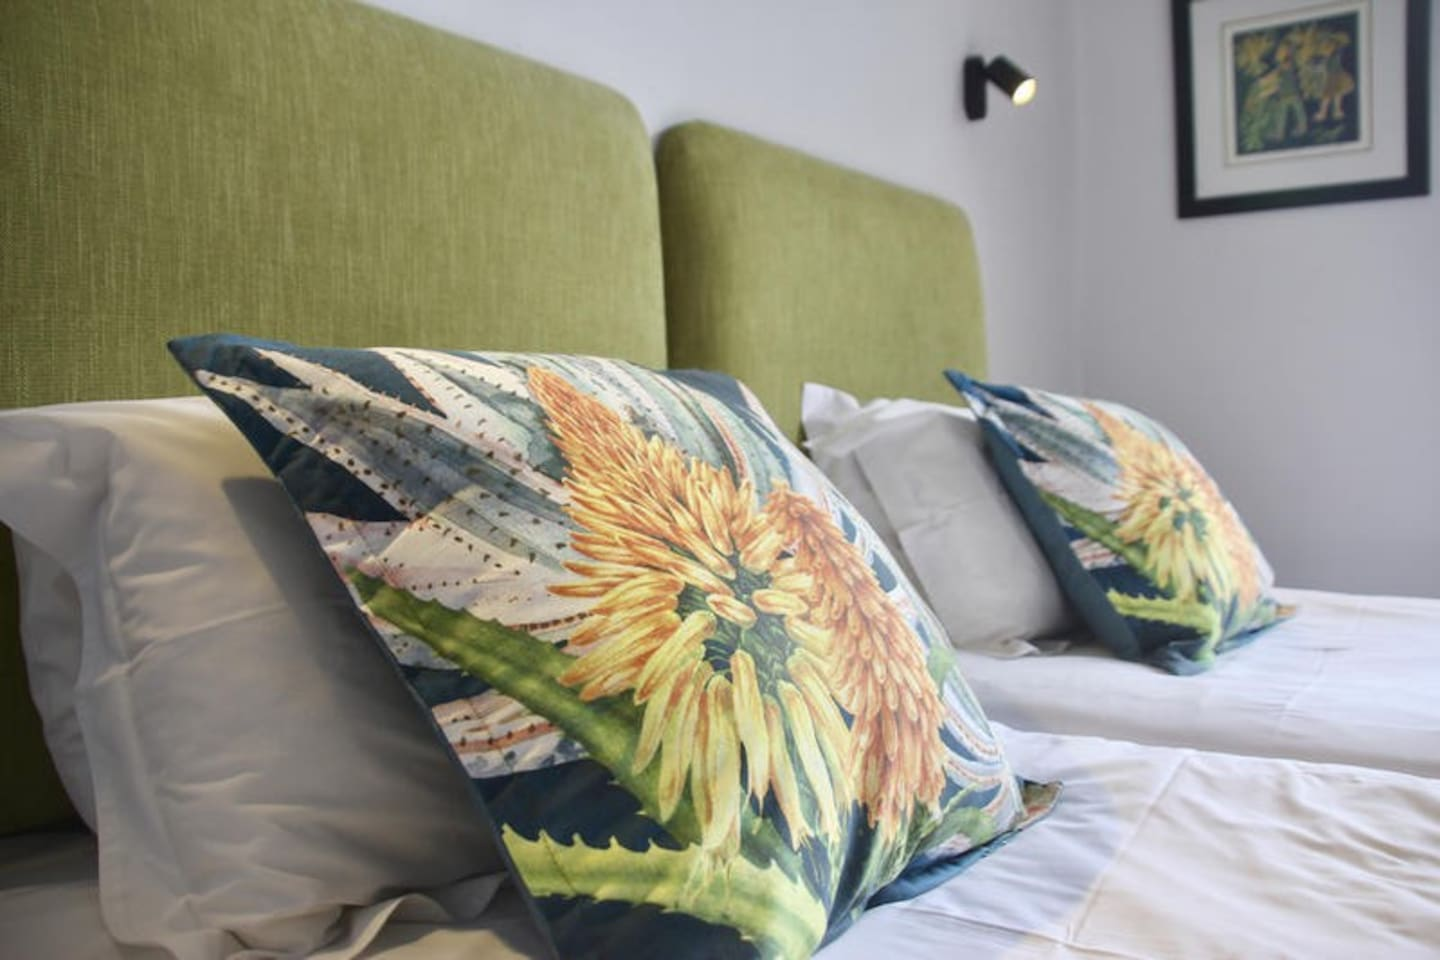 Room 1 cushions for comfort. North facing room - bright & sunny